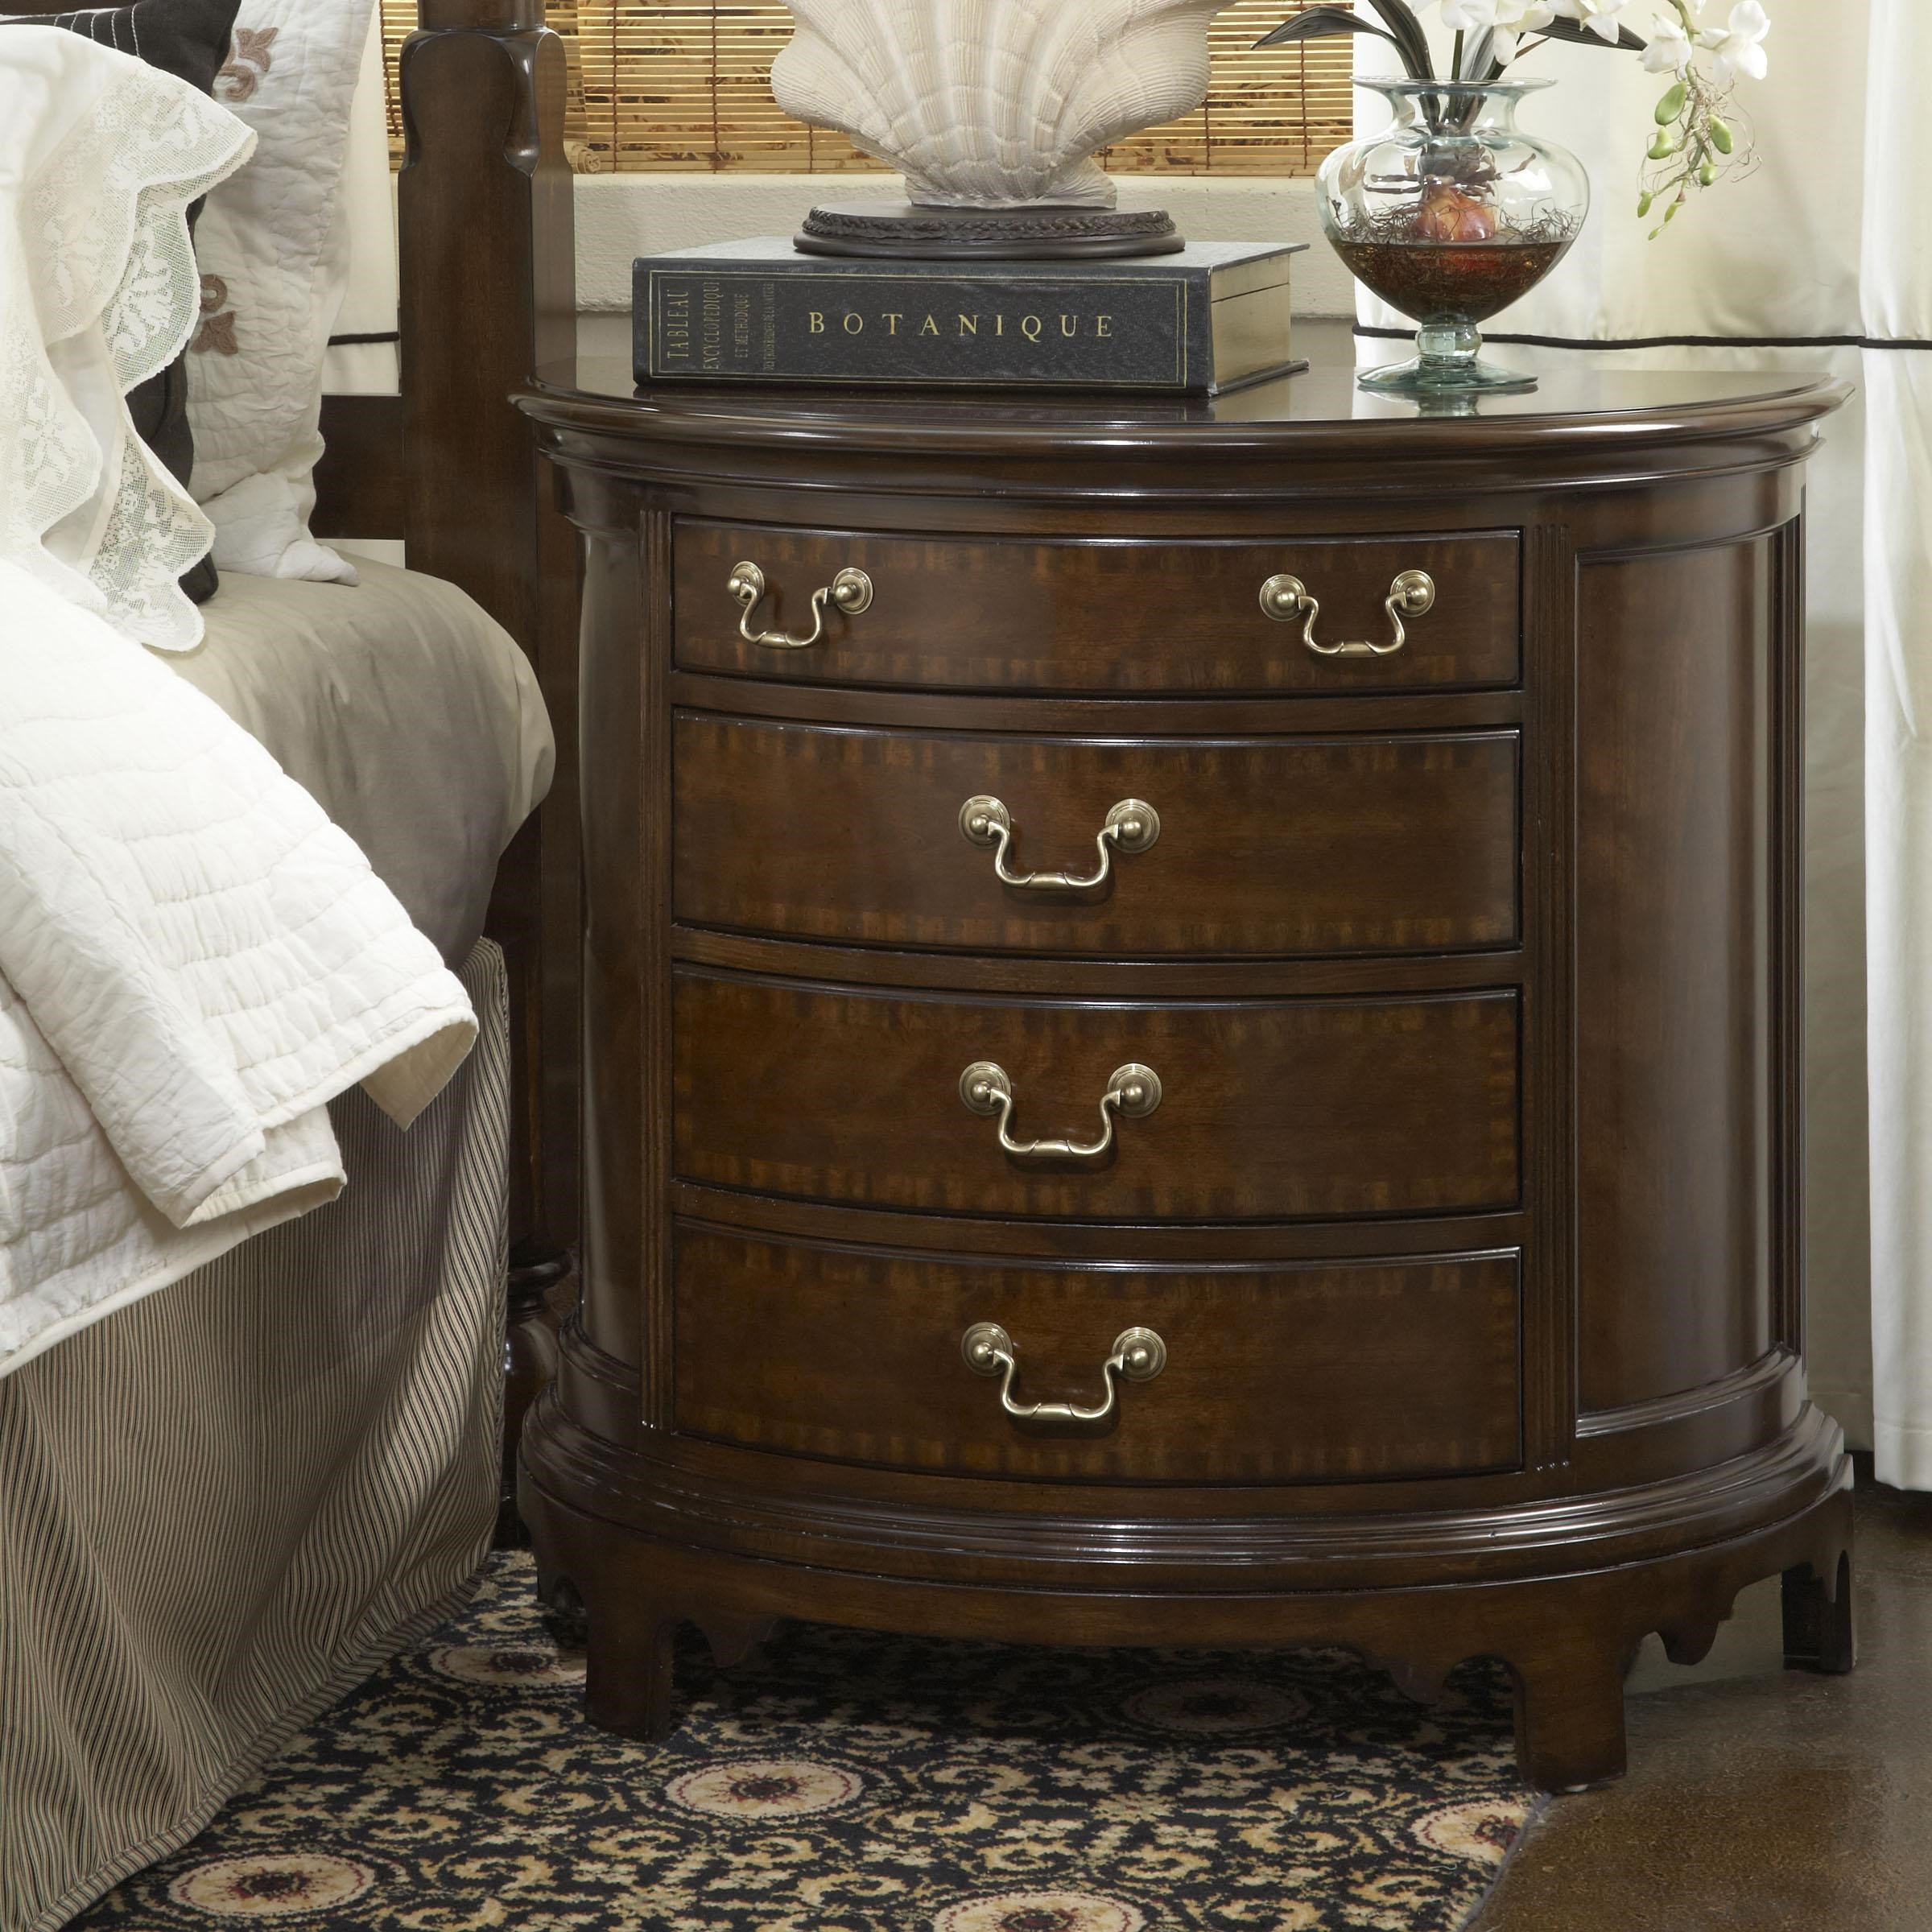 Beau Belfort Signature Belmont Norfolk Demilune Chest With Four Drawers